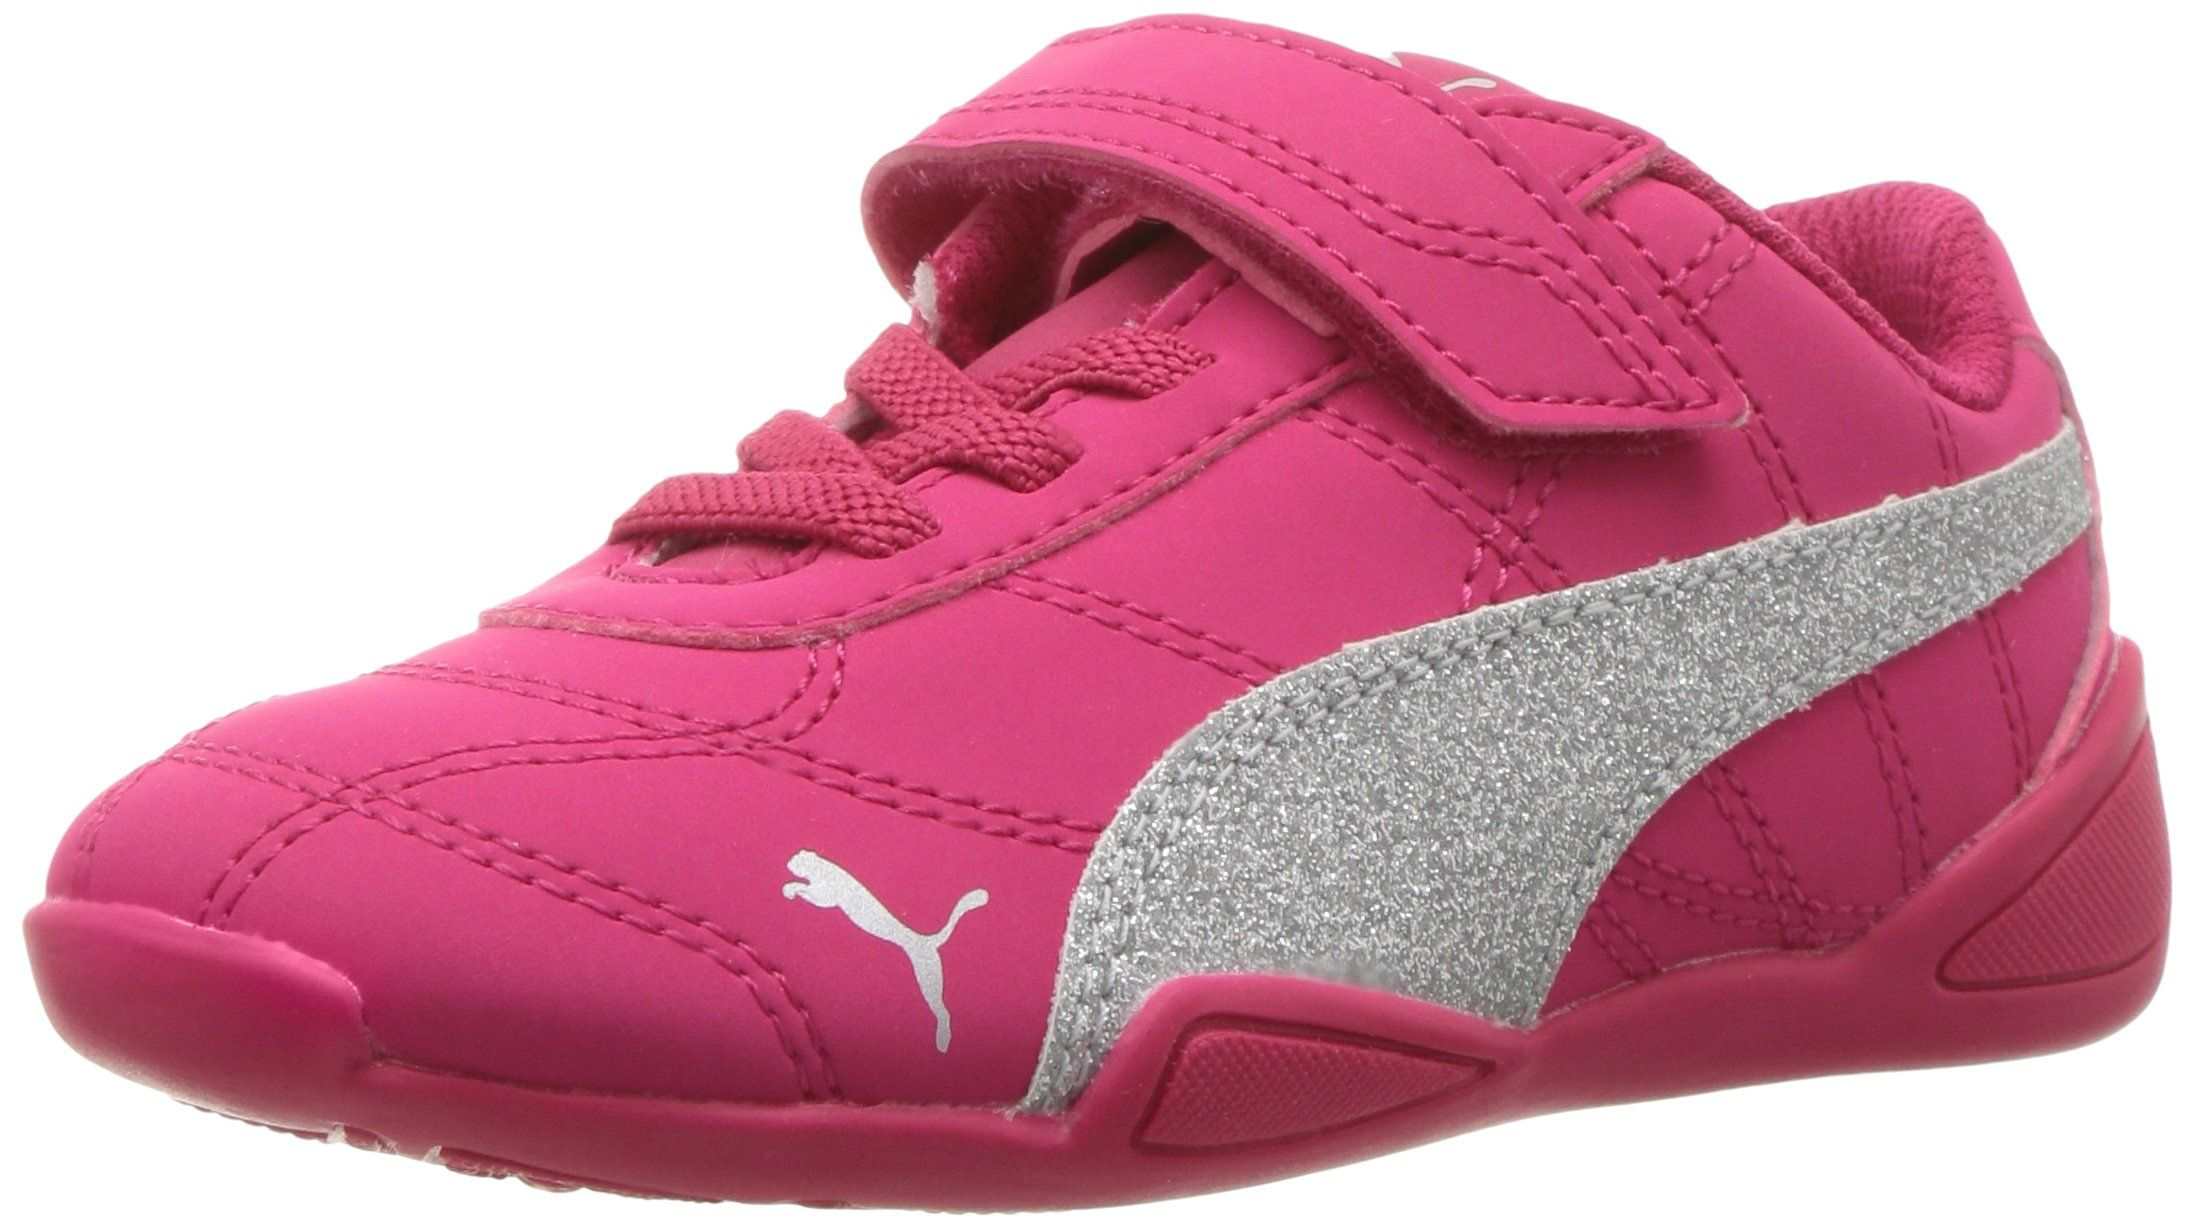 766880db64c8 PUMA Baby Tune Cat 3 Glam V, Love Potion-Puma Silver, 10 M US ...